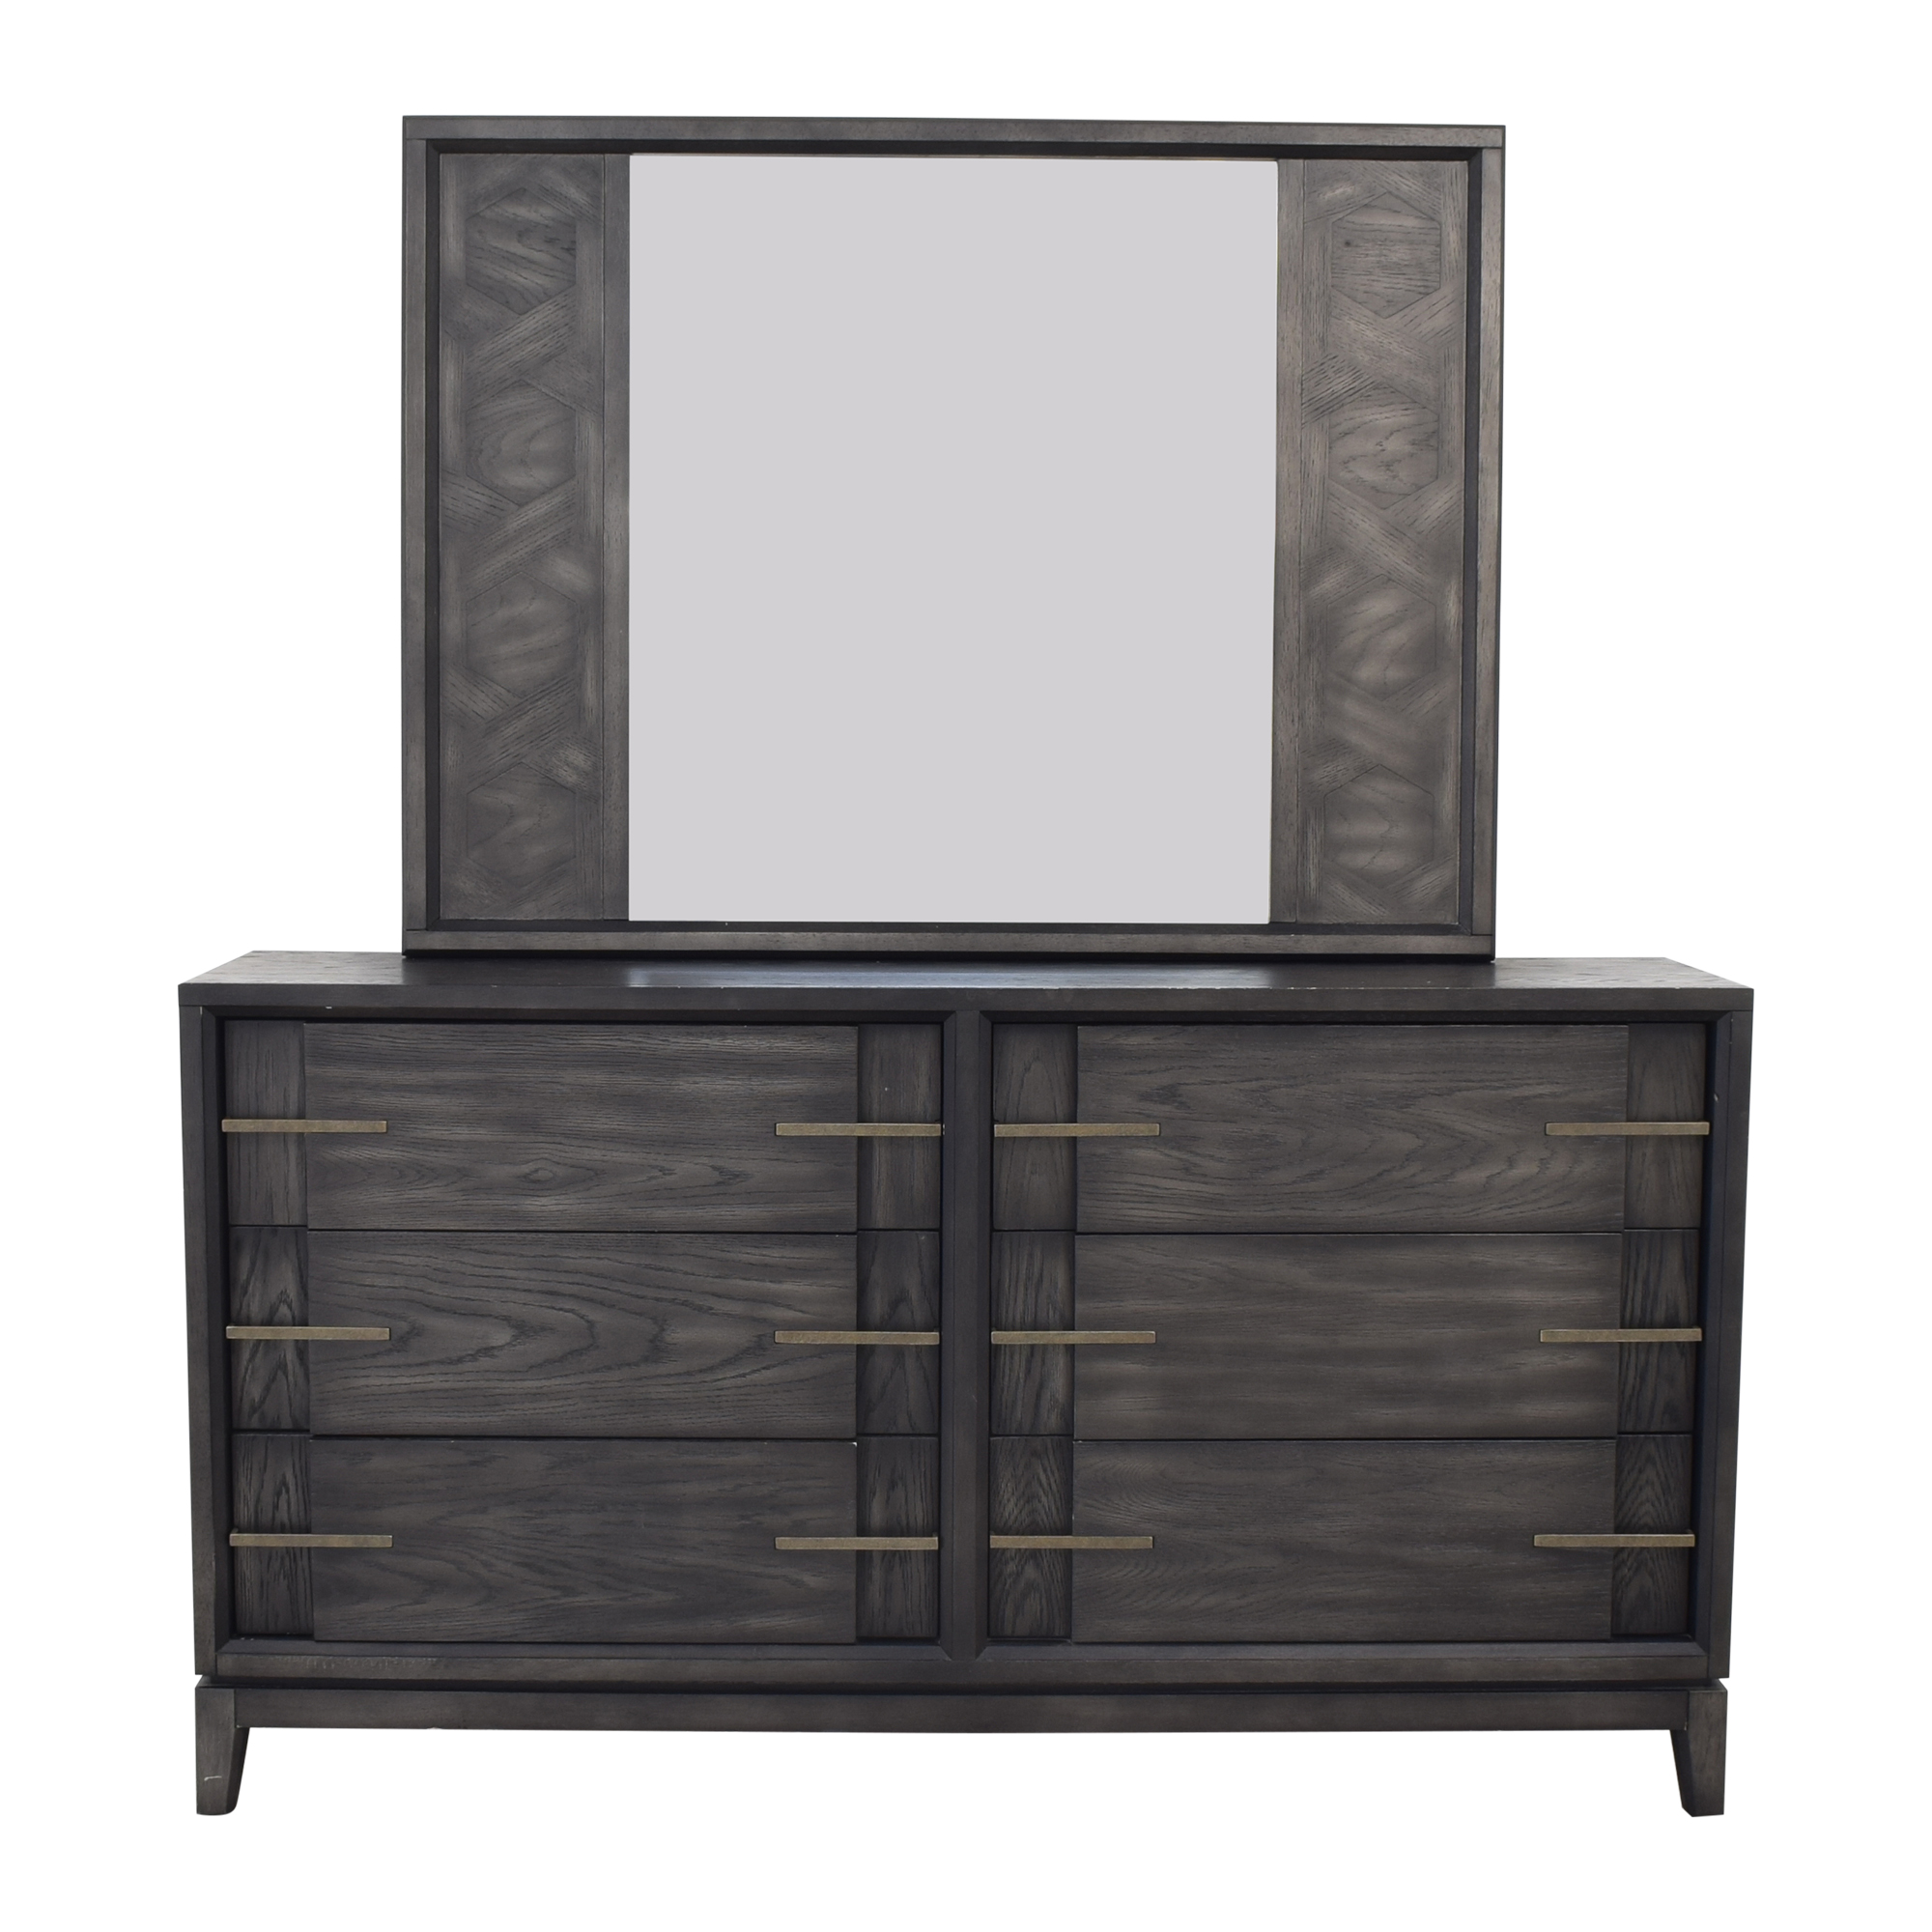 shop Magnussan Home Dresser with Mirror Magnussen Home Dressers